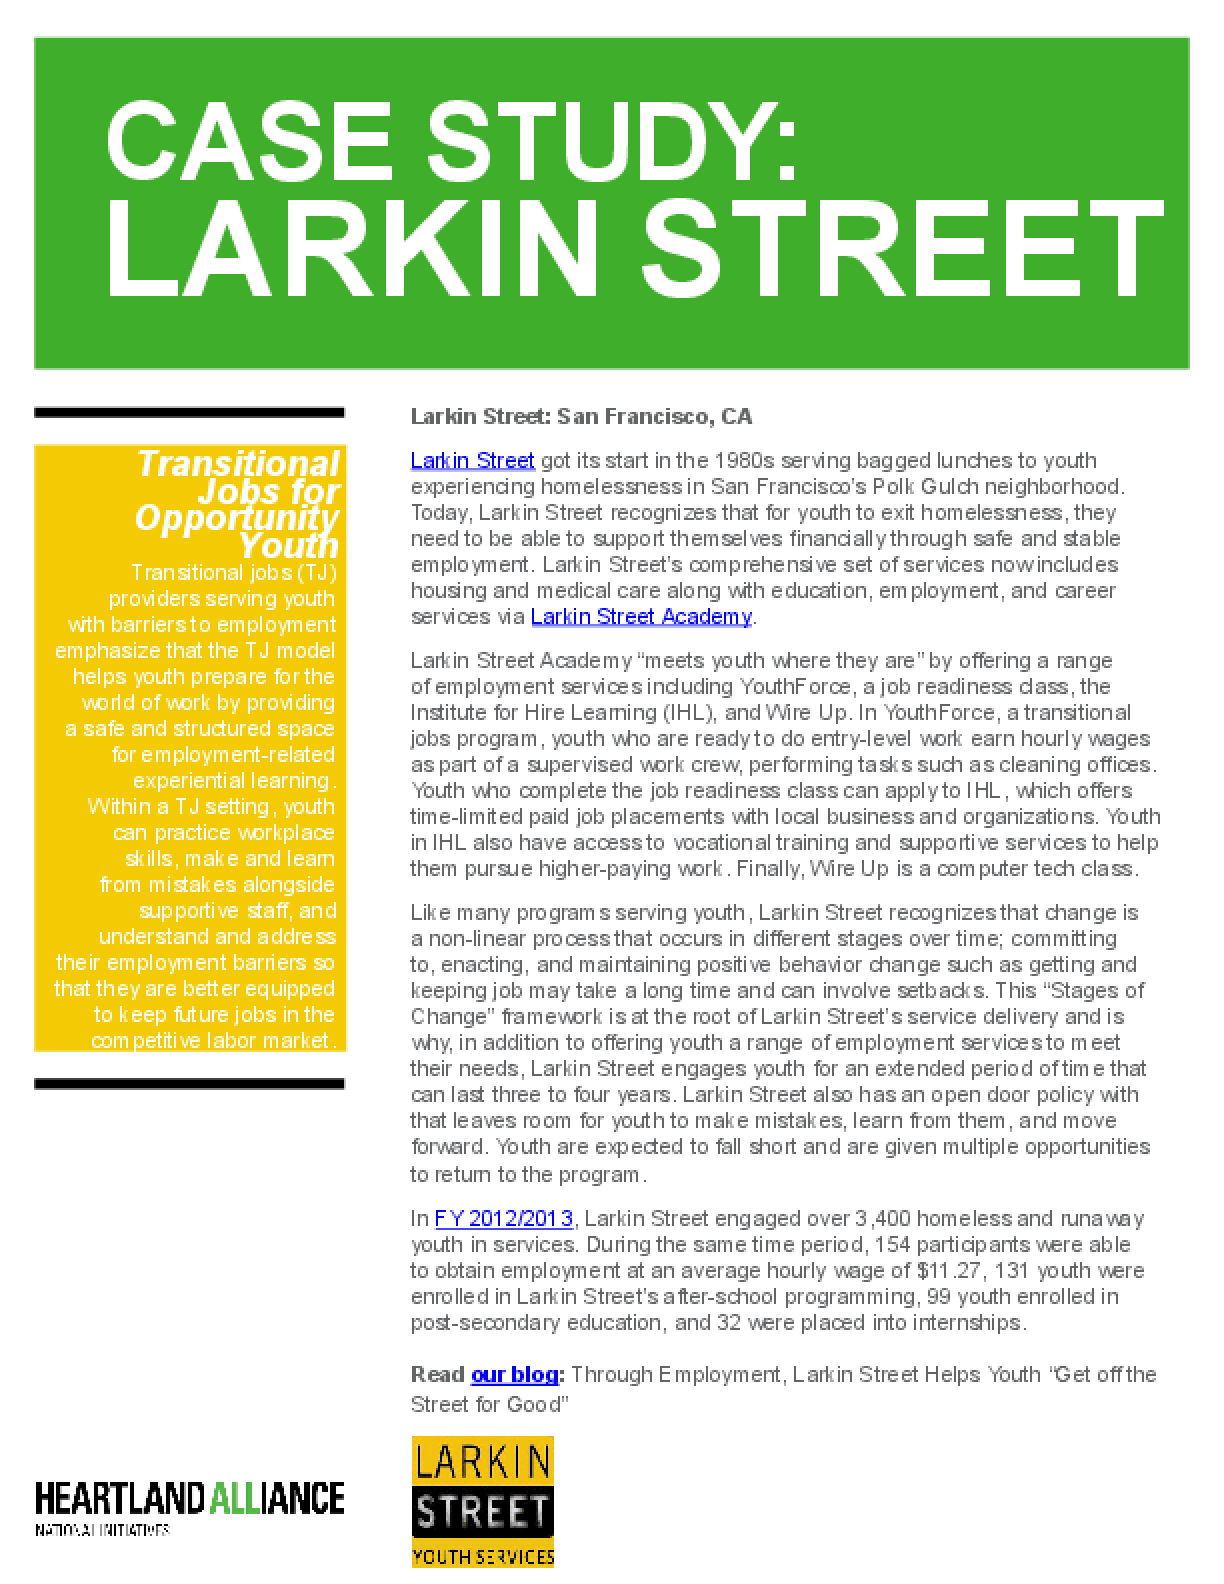 Opportunity Youth Employment Program Case Study: Larkin Street